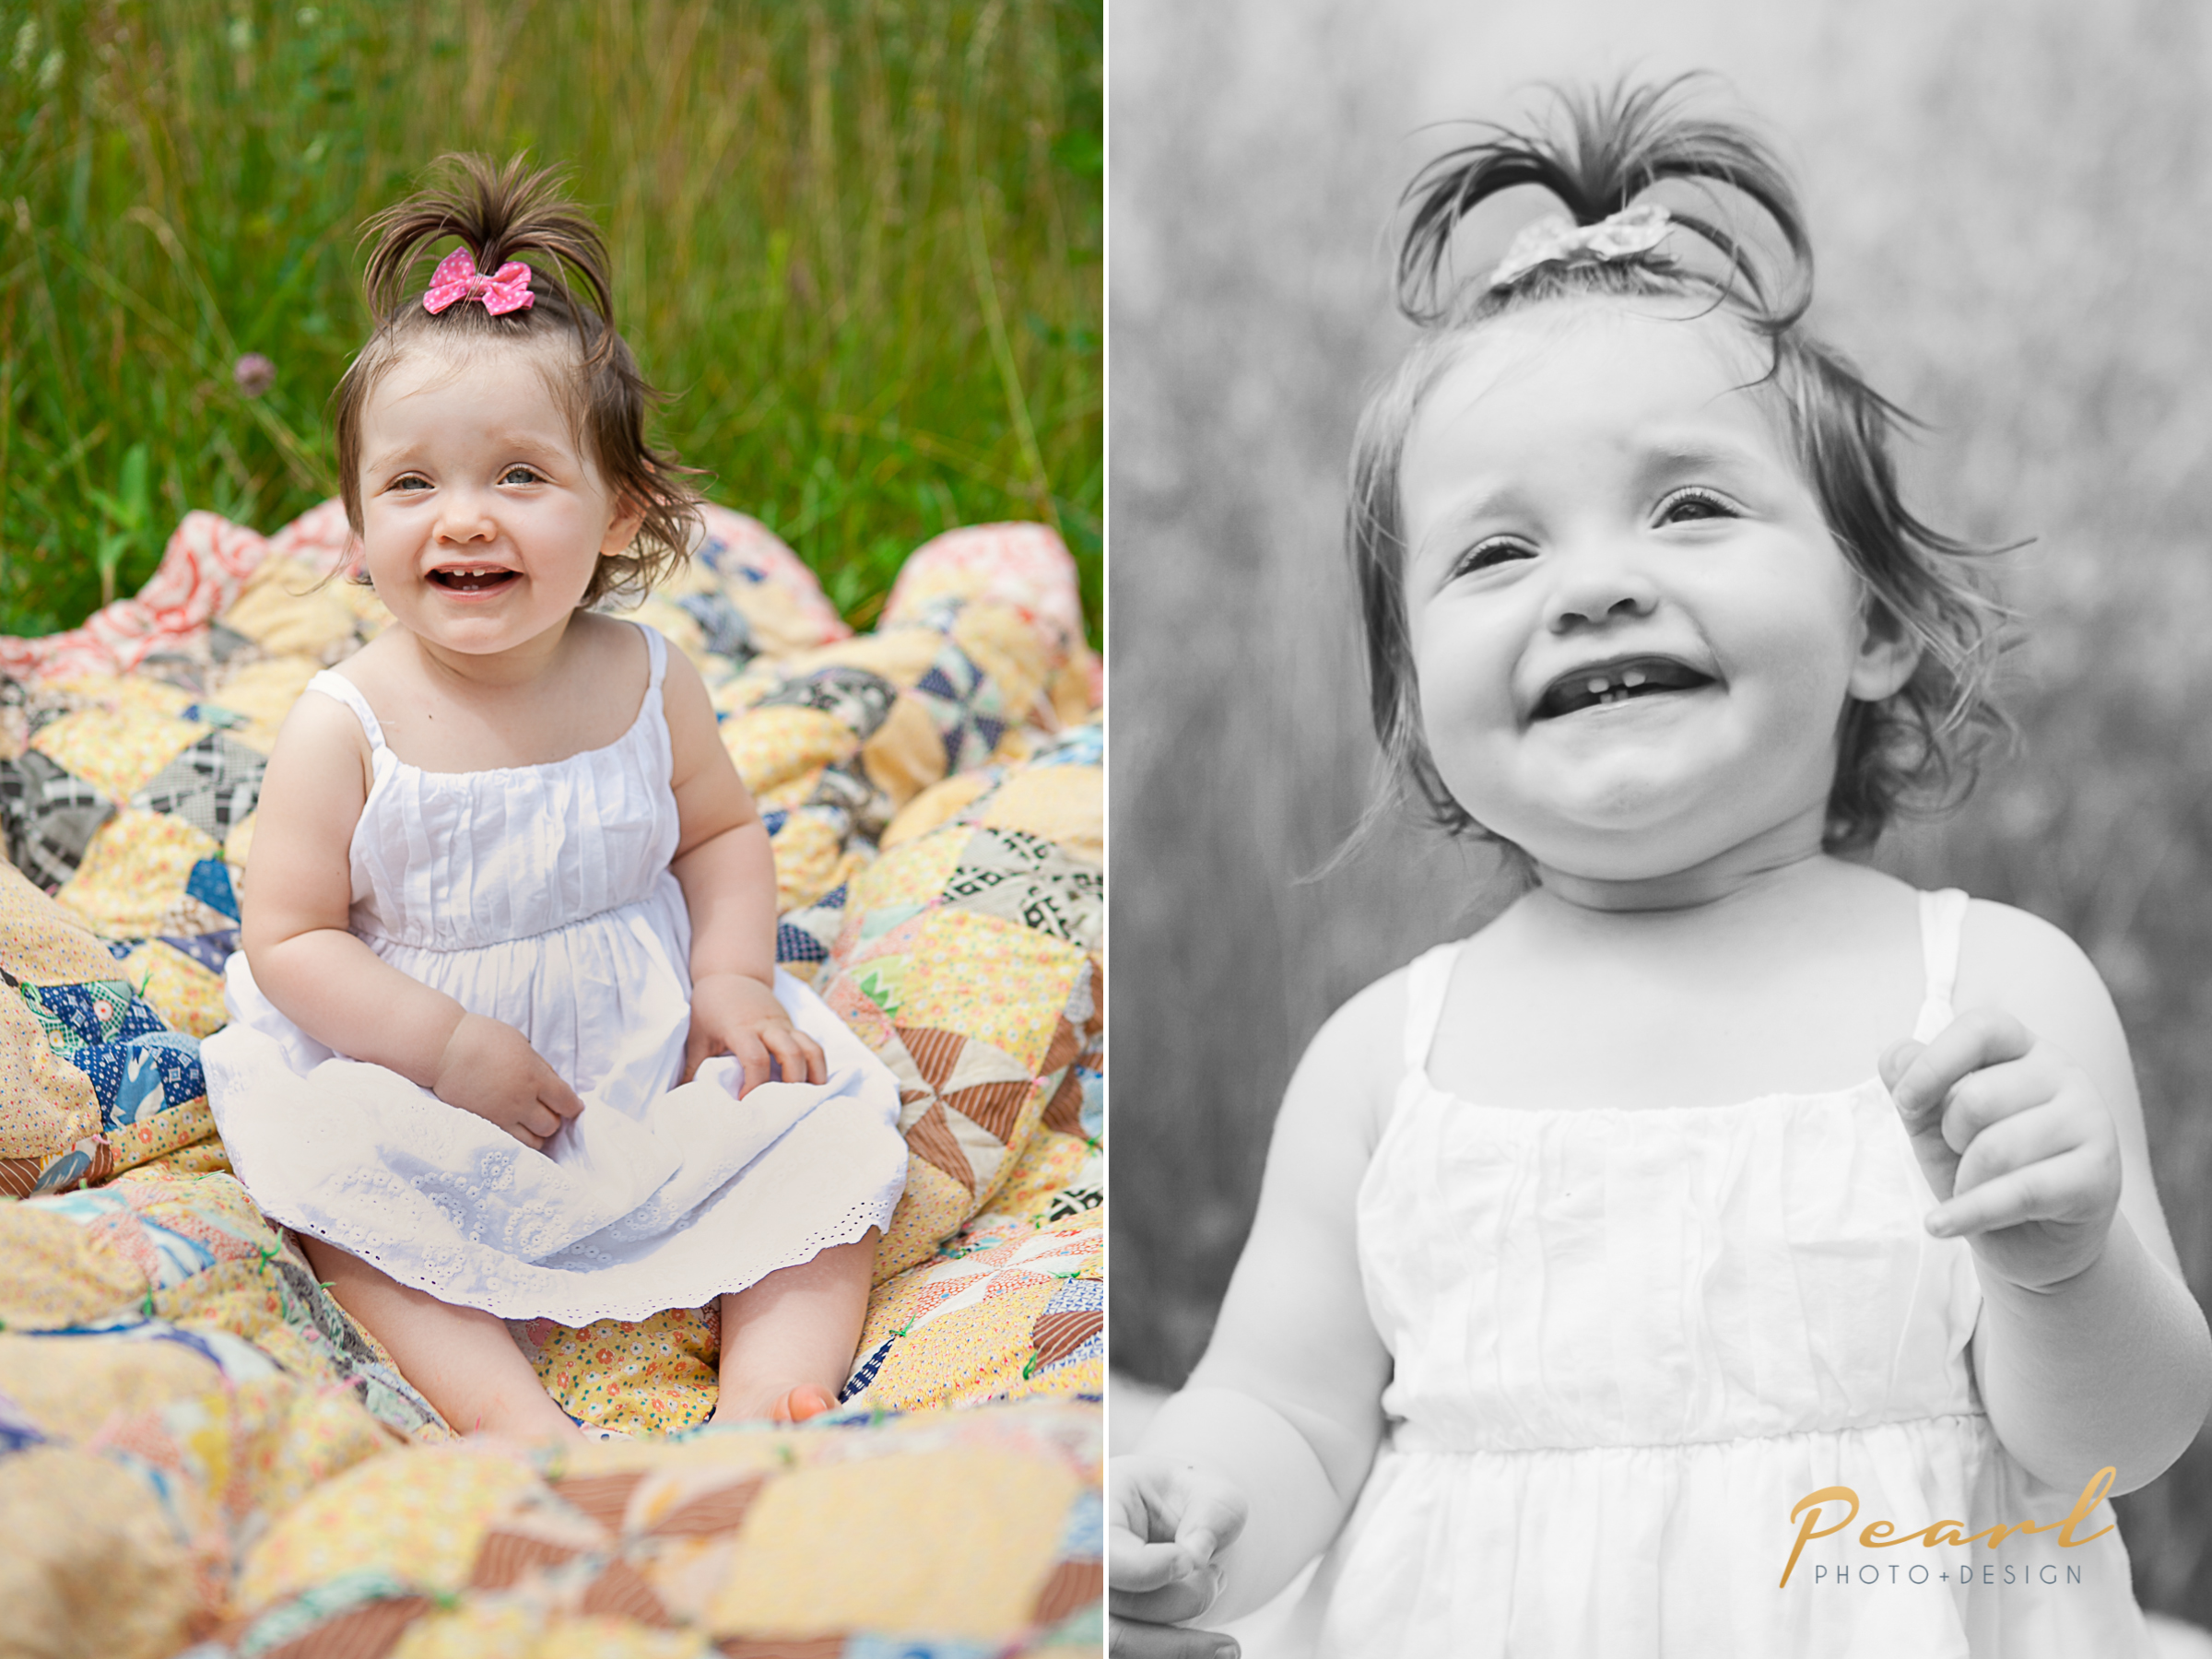 Pearl Photo & Design | Lafayette Family Photographer